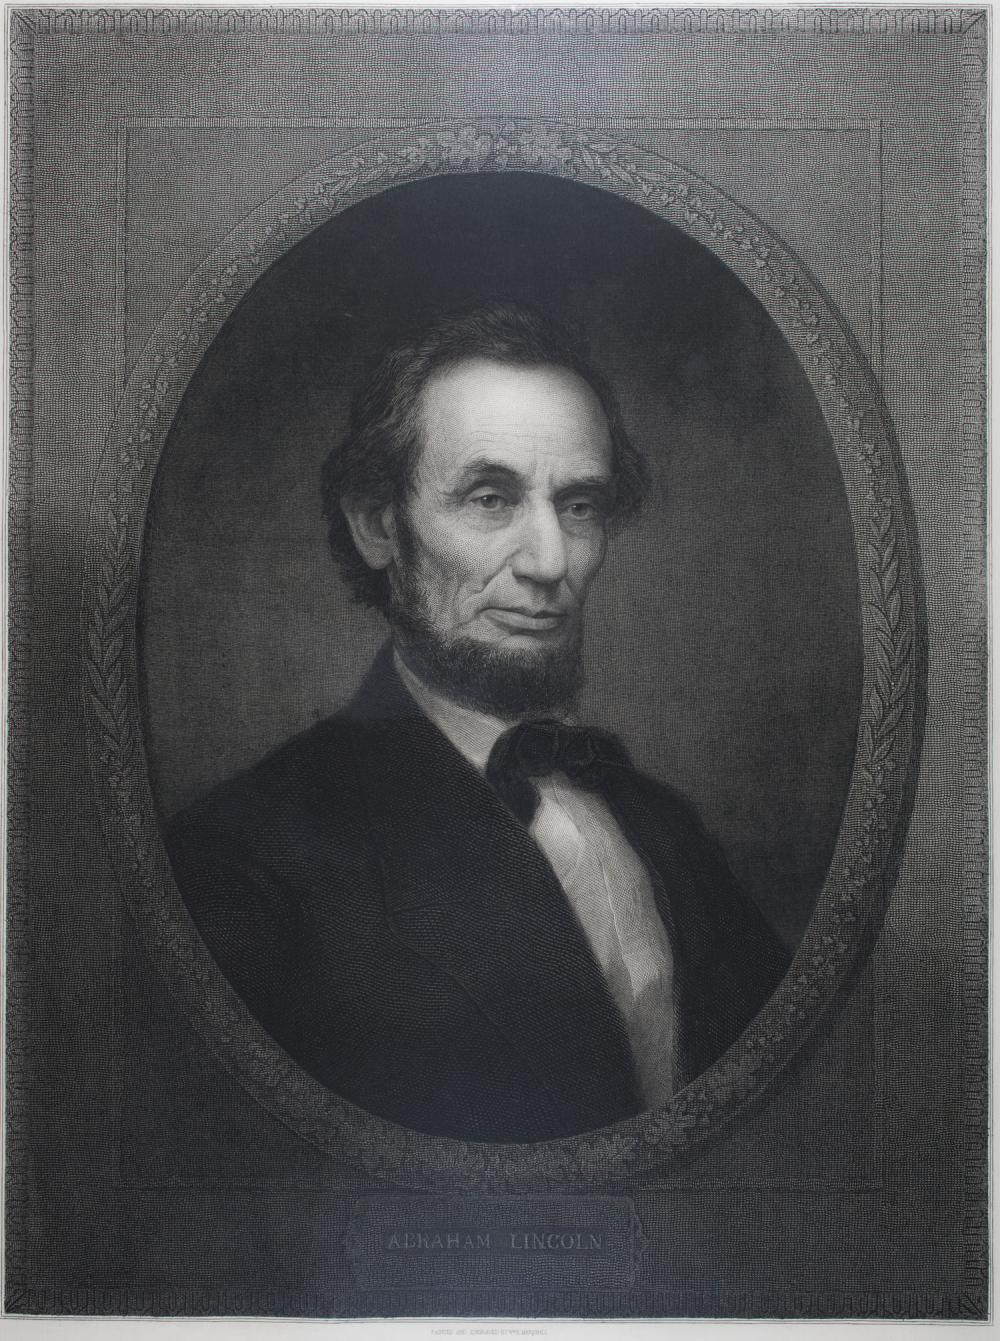 ABRAHAM LINCOLN ENGRAVING BY MARSHALL